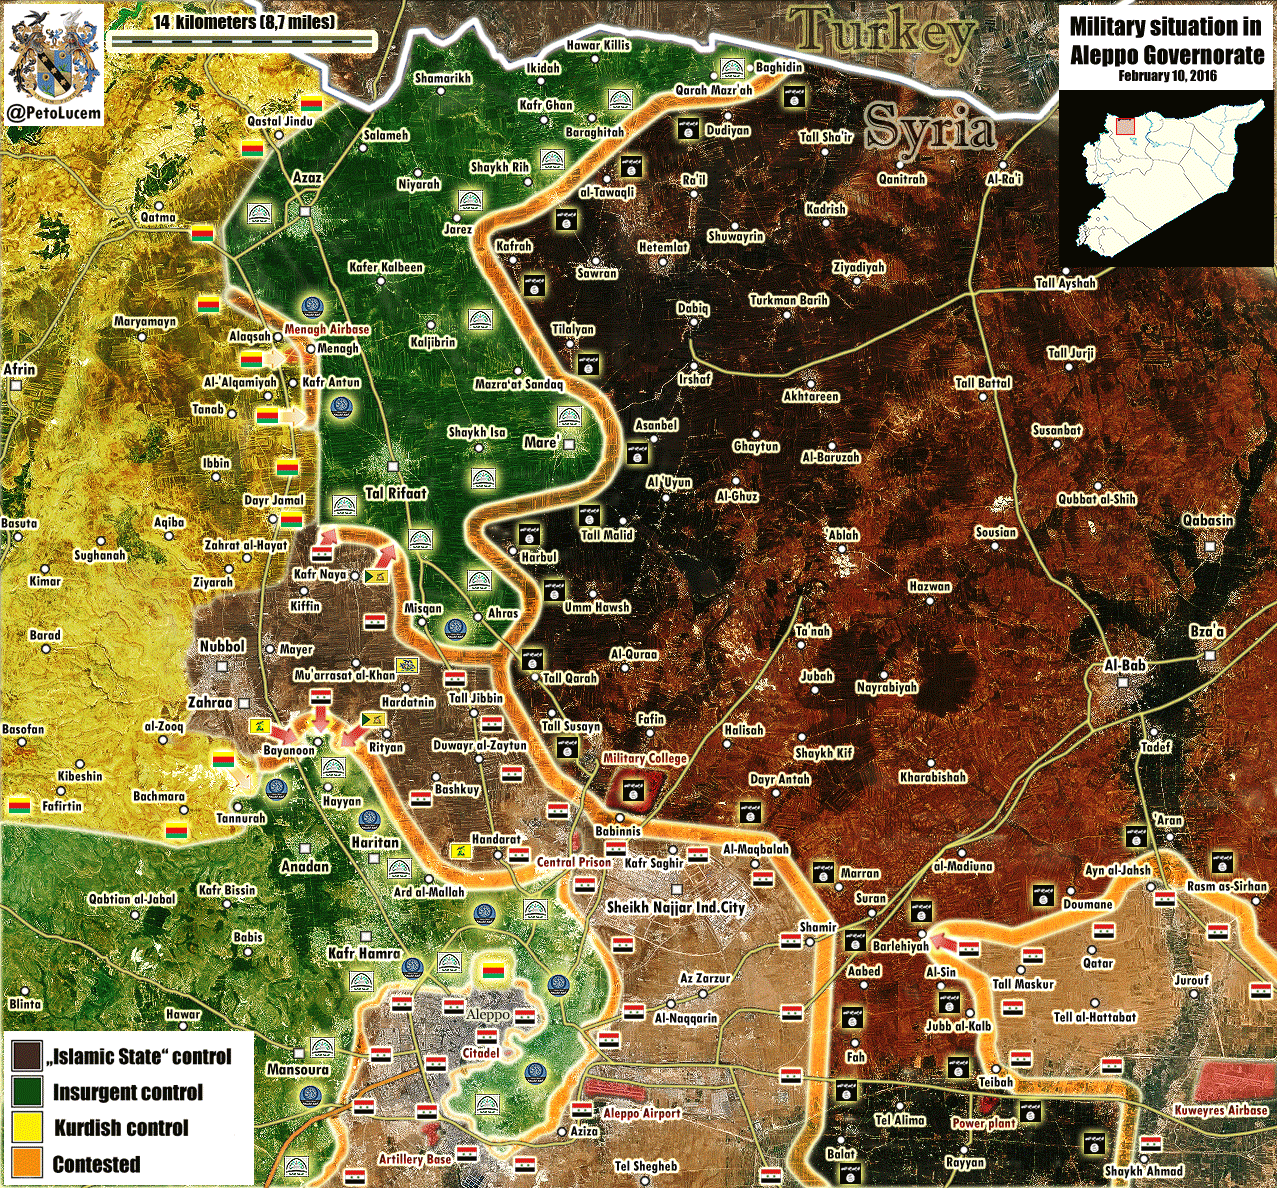 map_aleppo_10022016_png